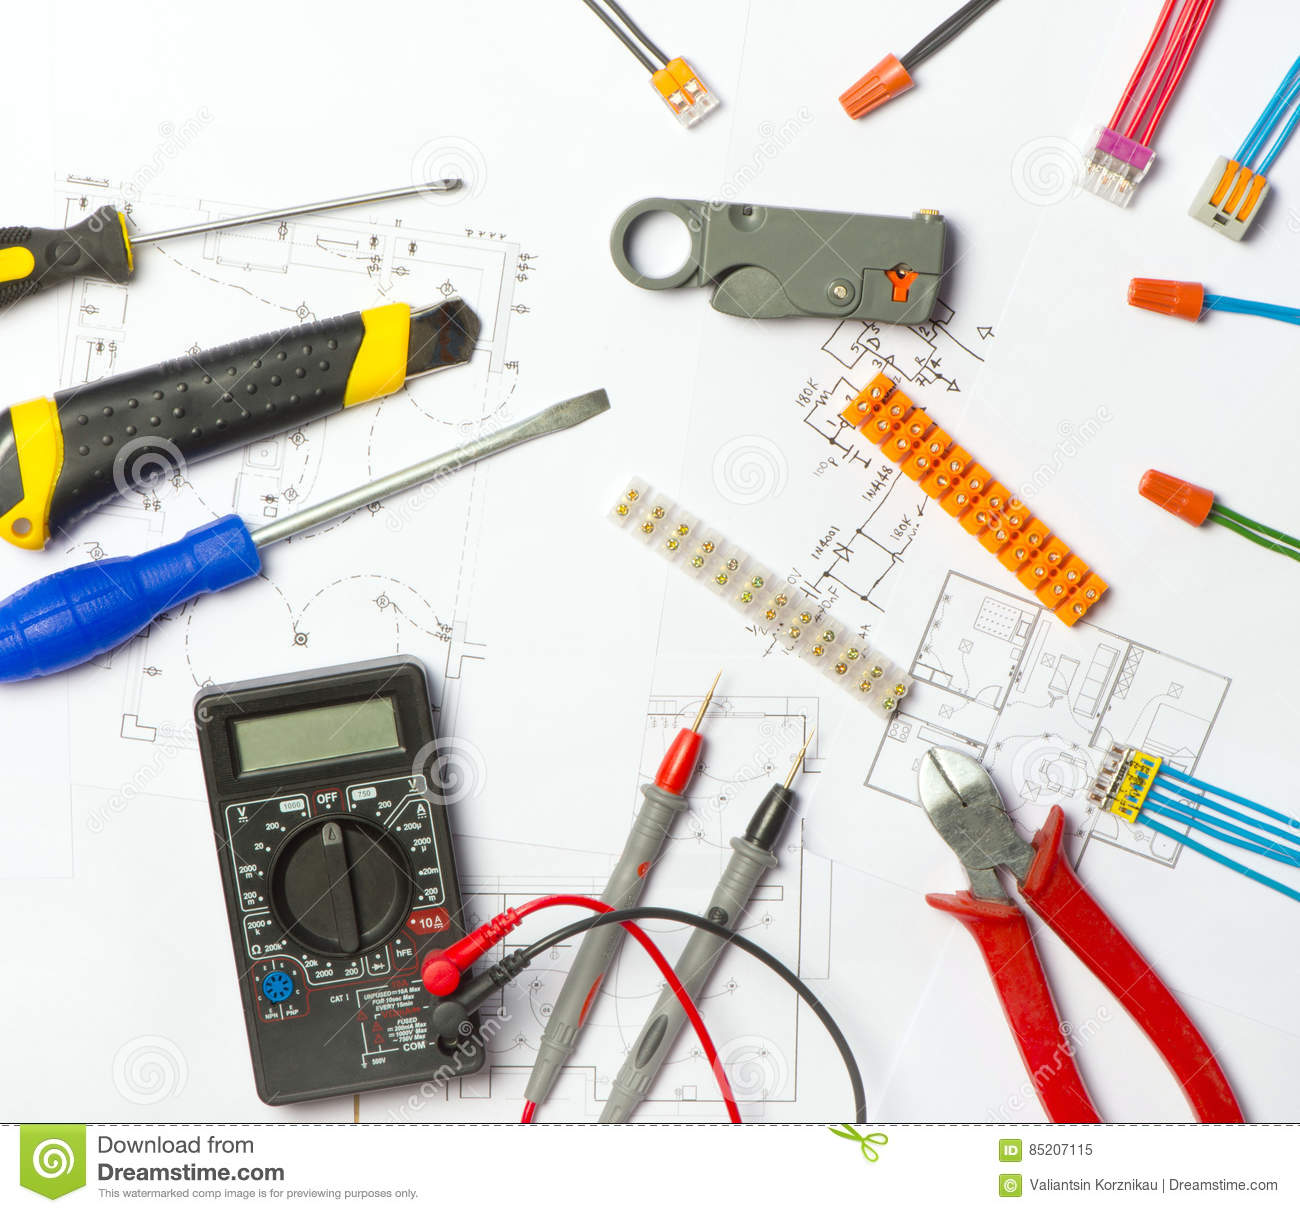 Job electrician